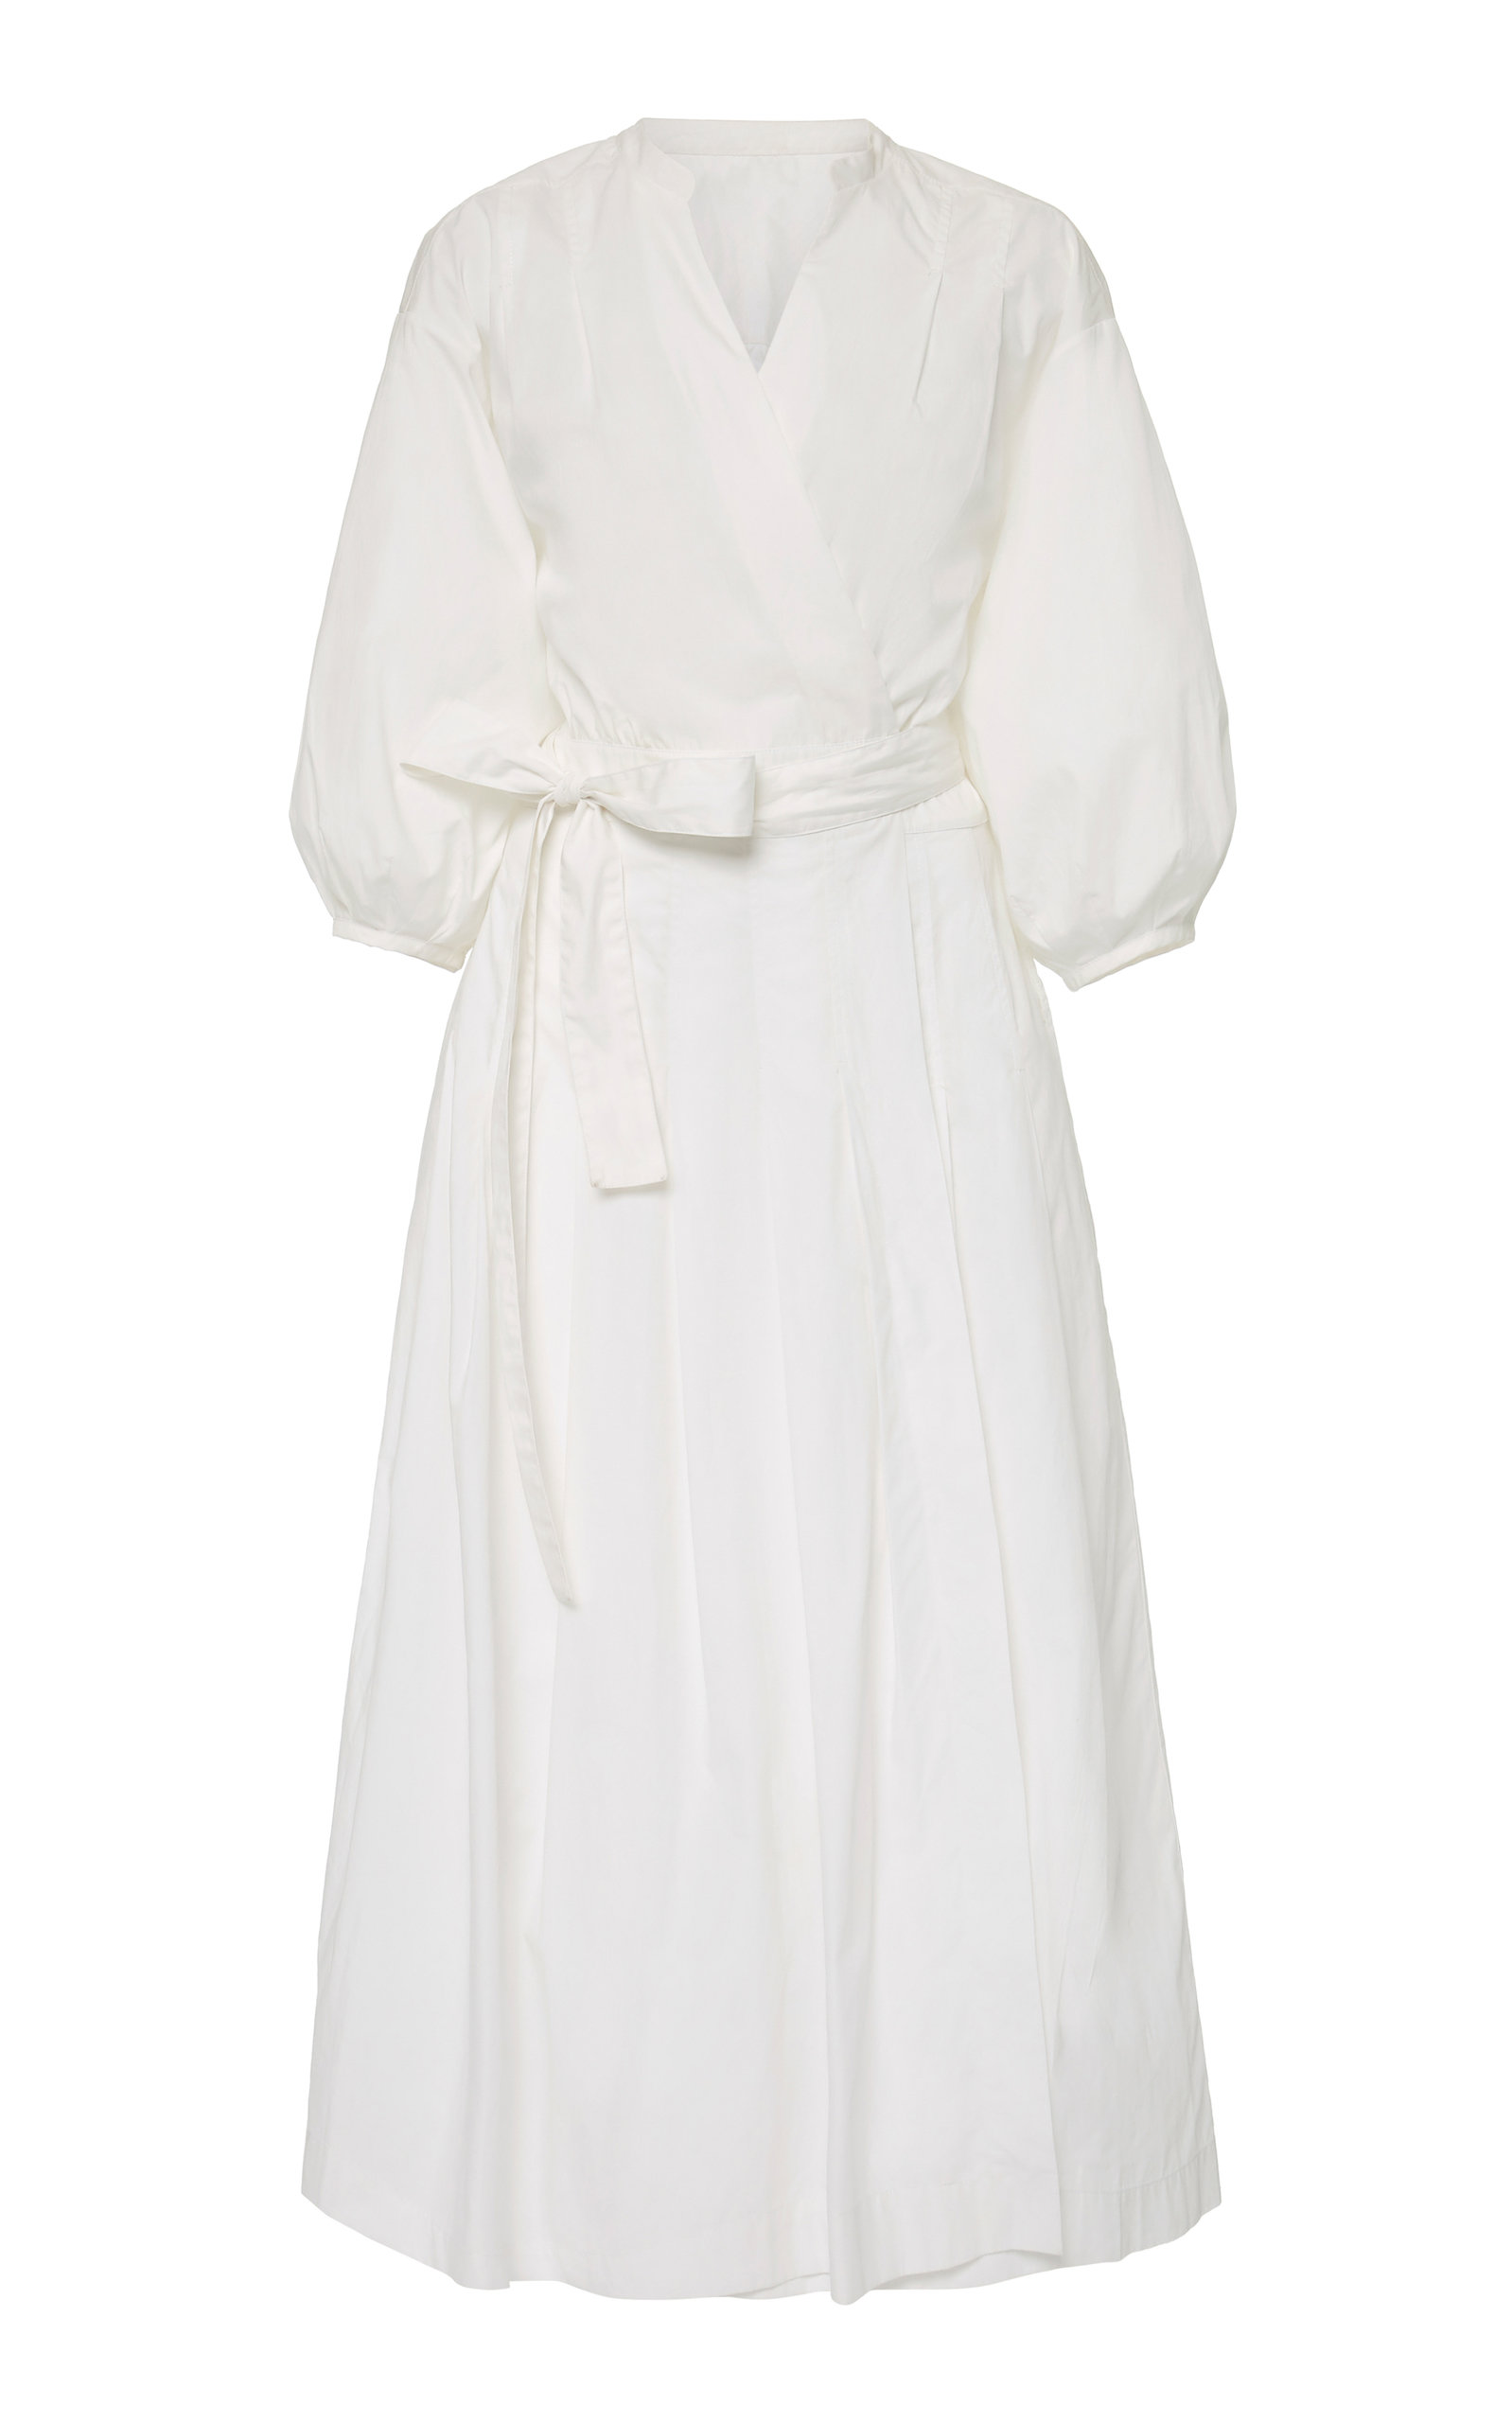 Buy Three Graces London Delmare Belted Cotton-Poplin Midi Dress online, shop Three Graces London at the best price